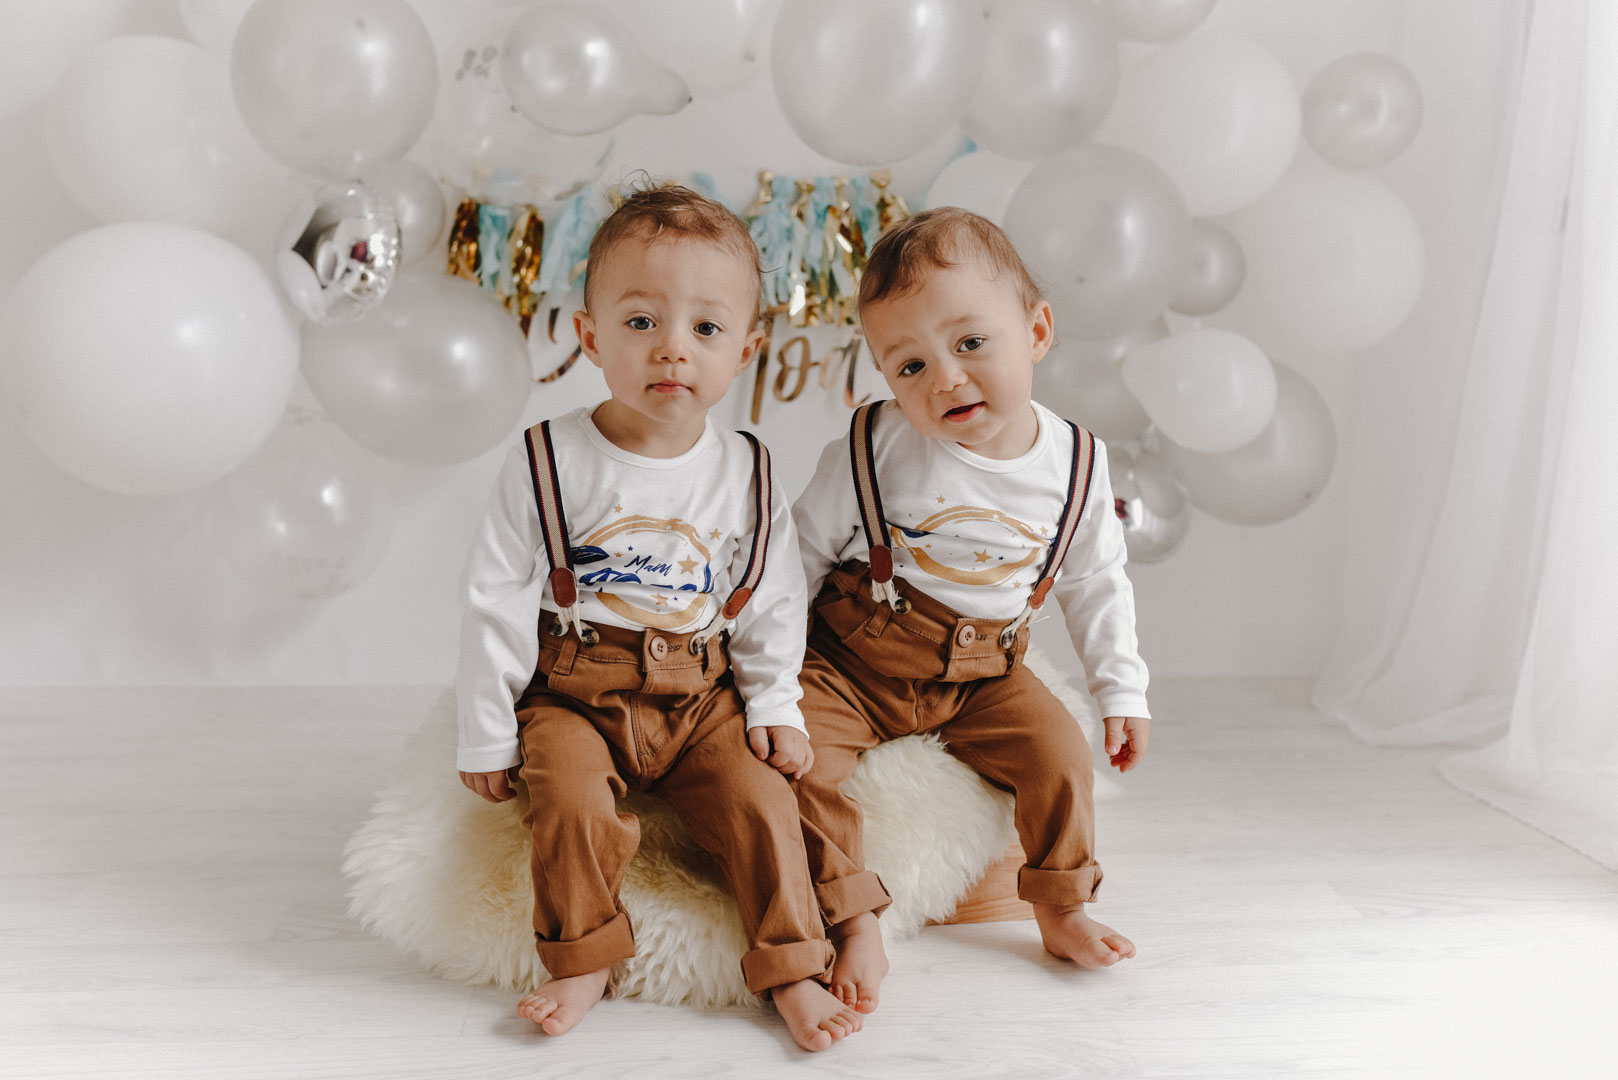 One year old twins